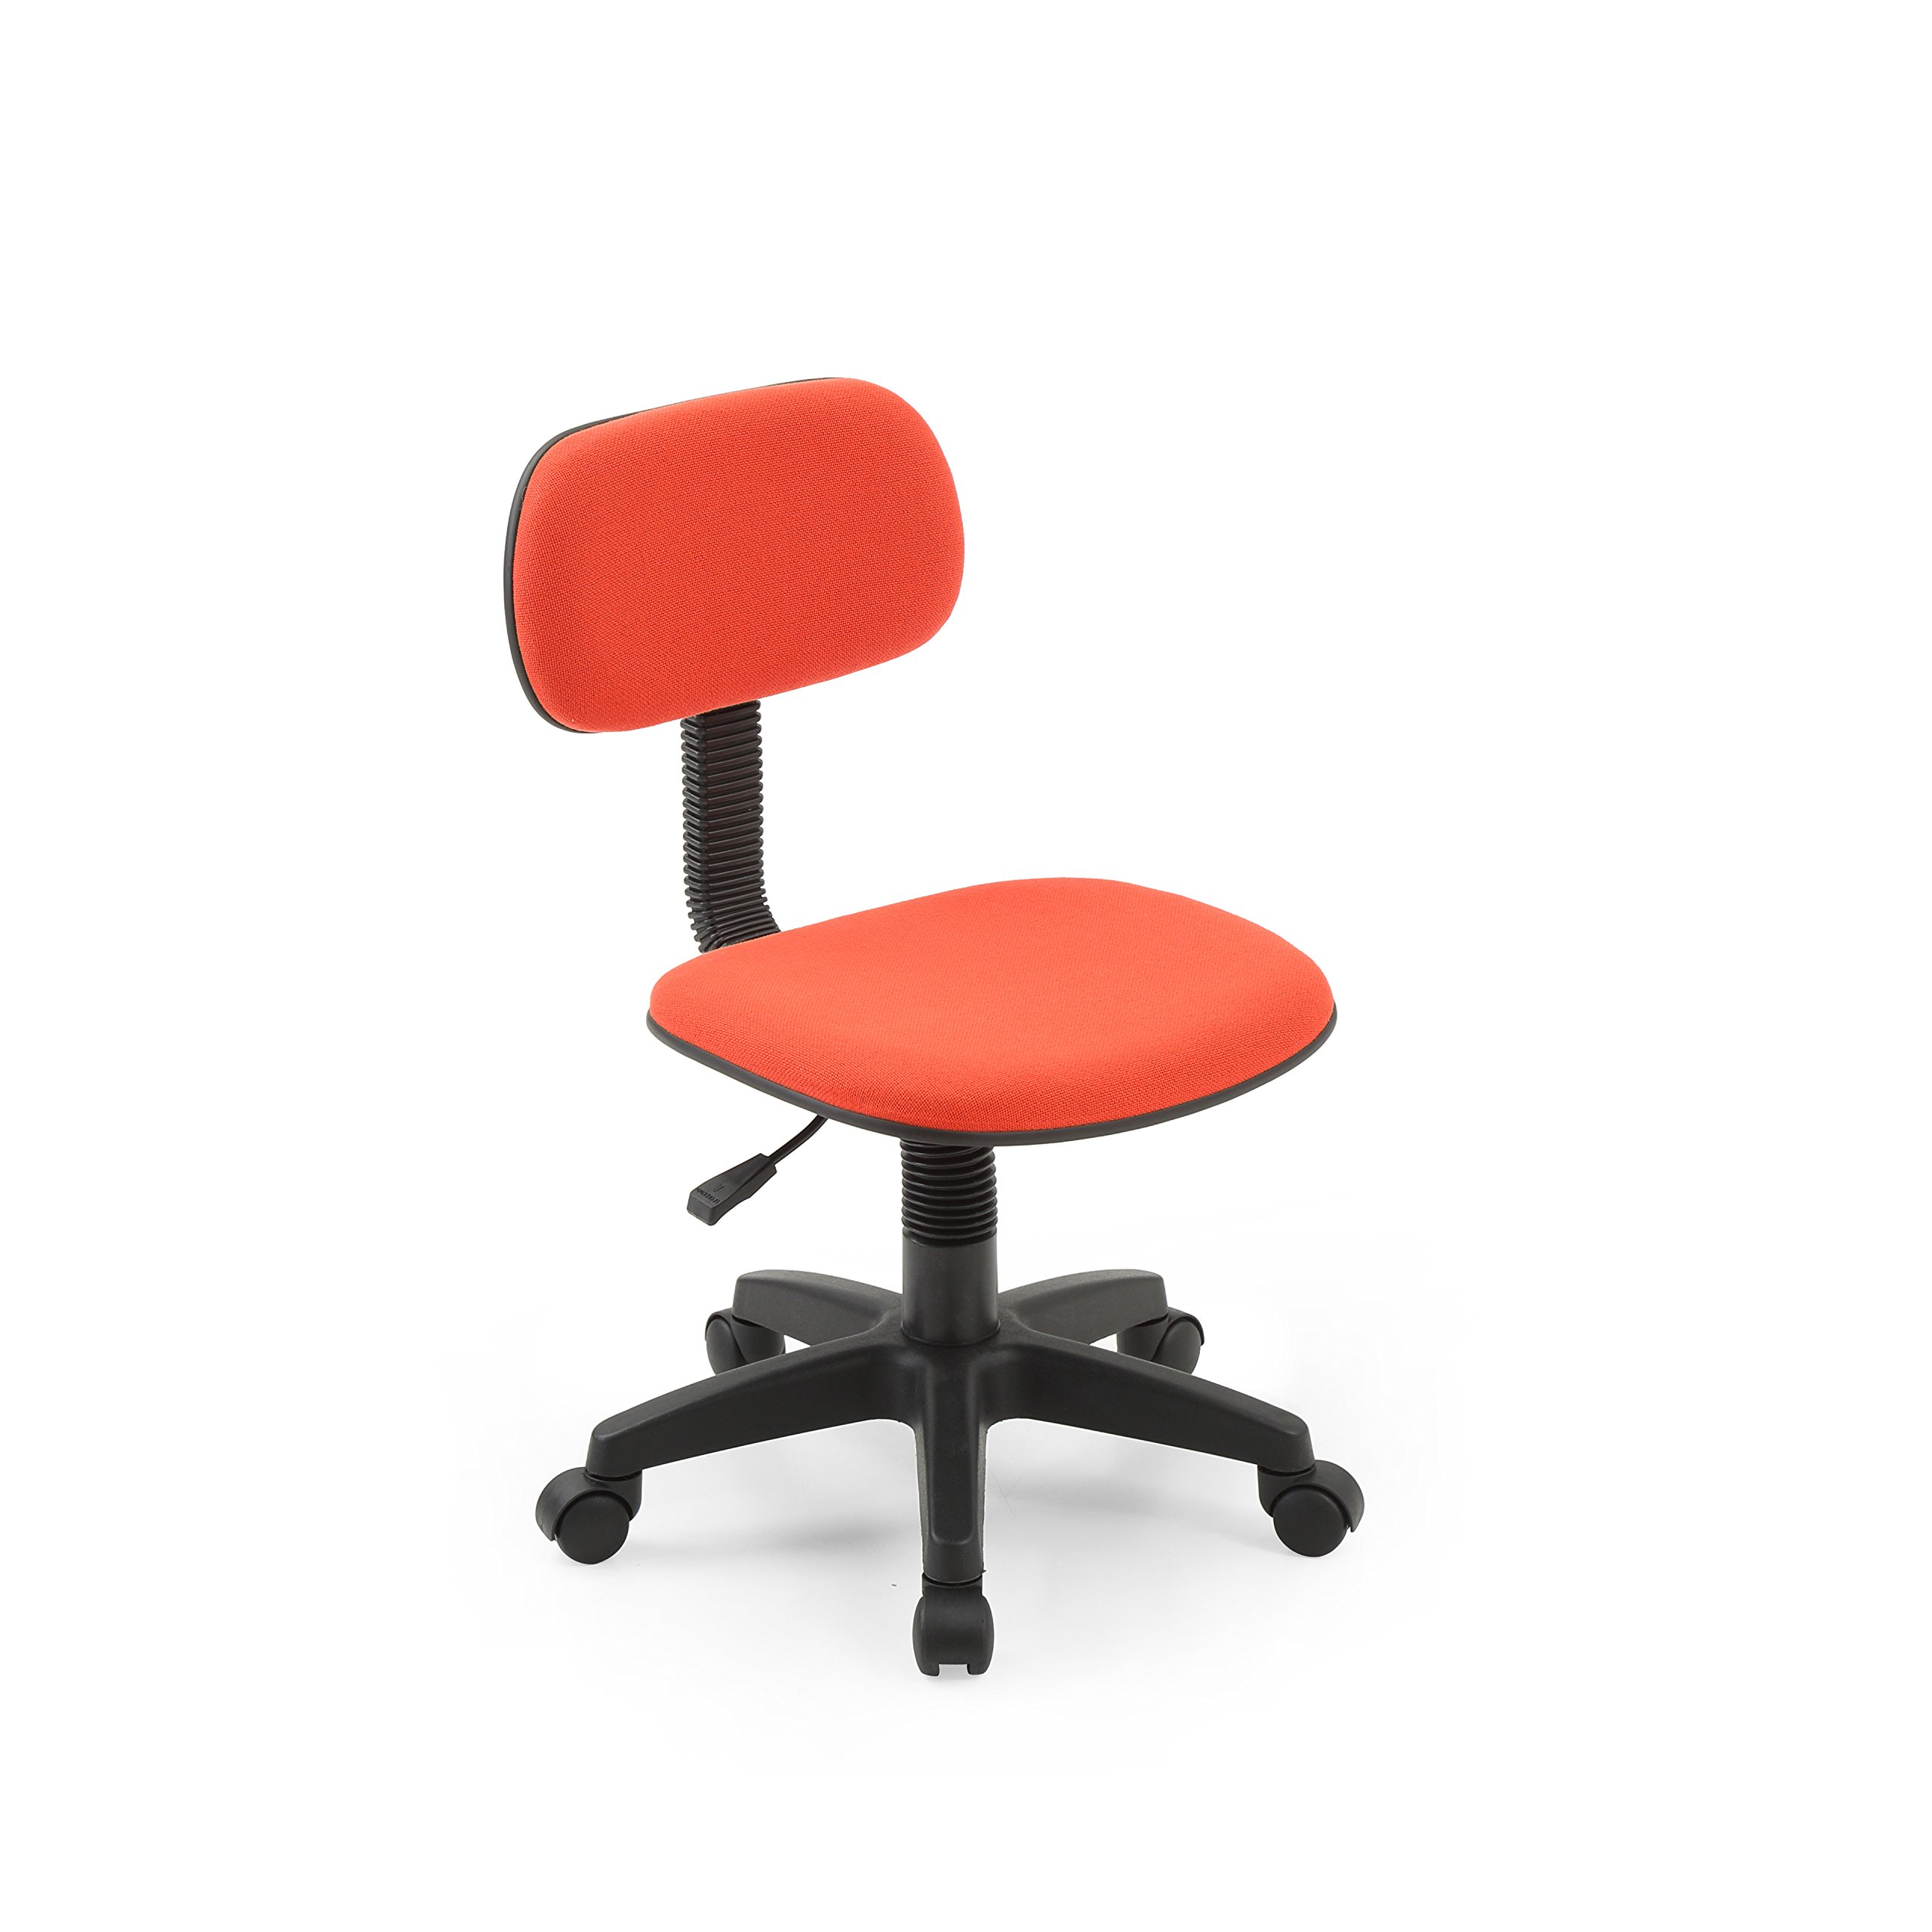 Hodedah Armless, Low-Back, Adjustable Height, Swiveling Task Chair with Padded Back and Seat in Red by HODEDAH IMPORT